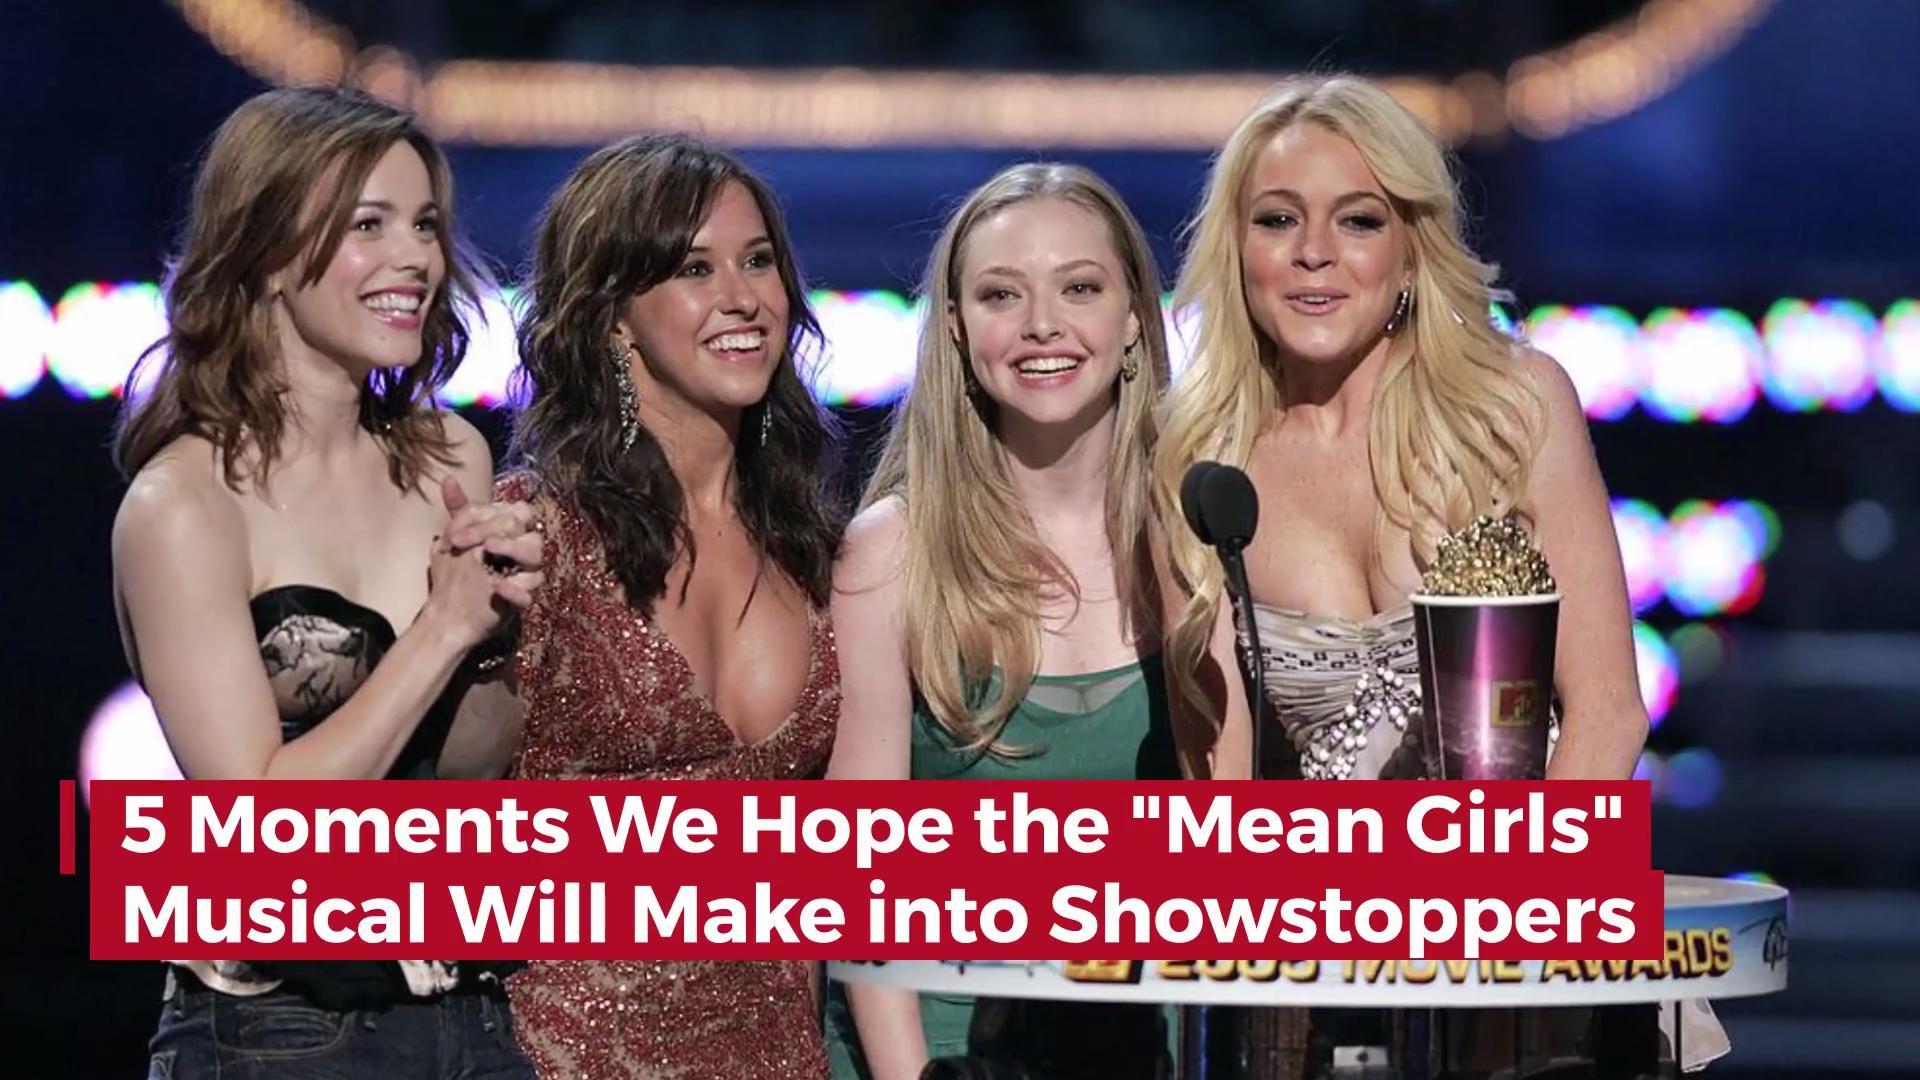 mean girls continuity errors | instyle